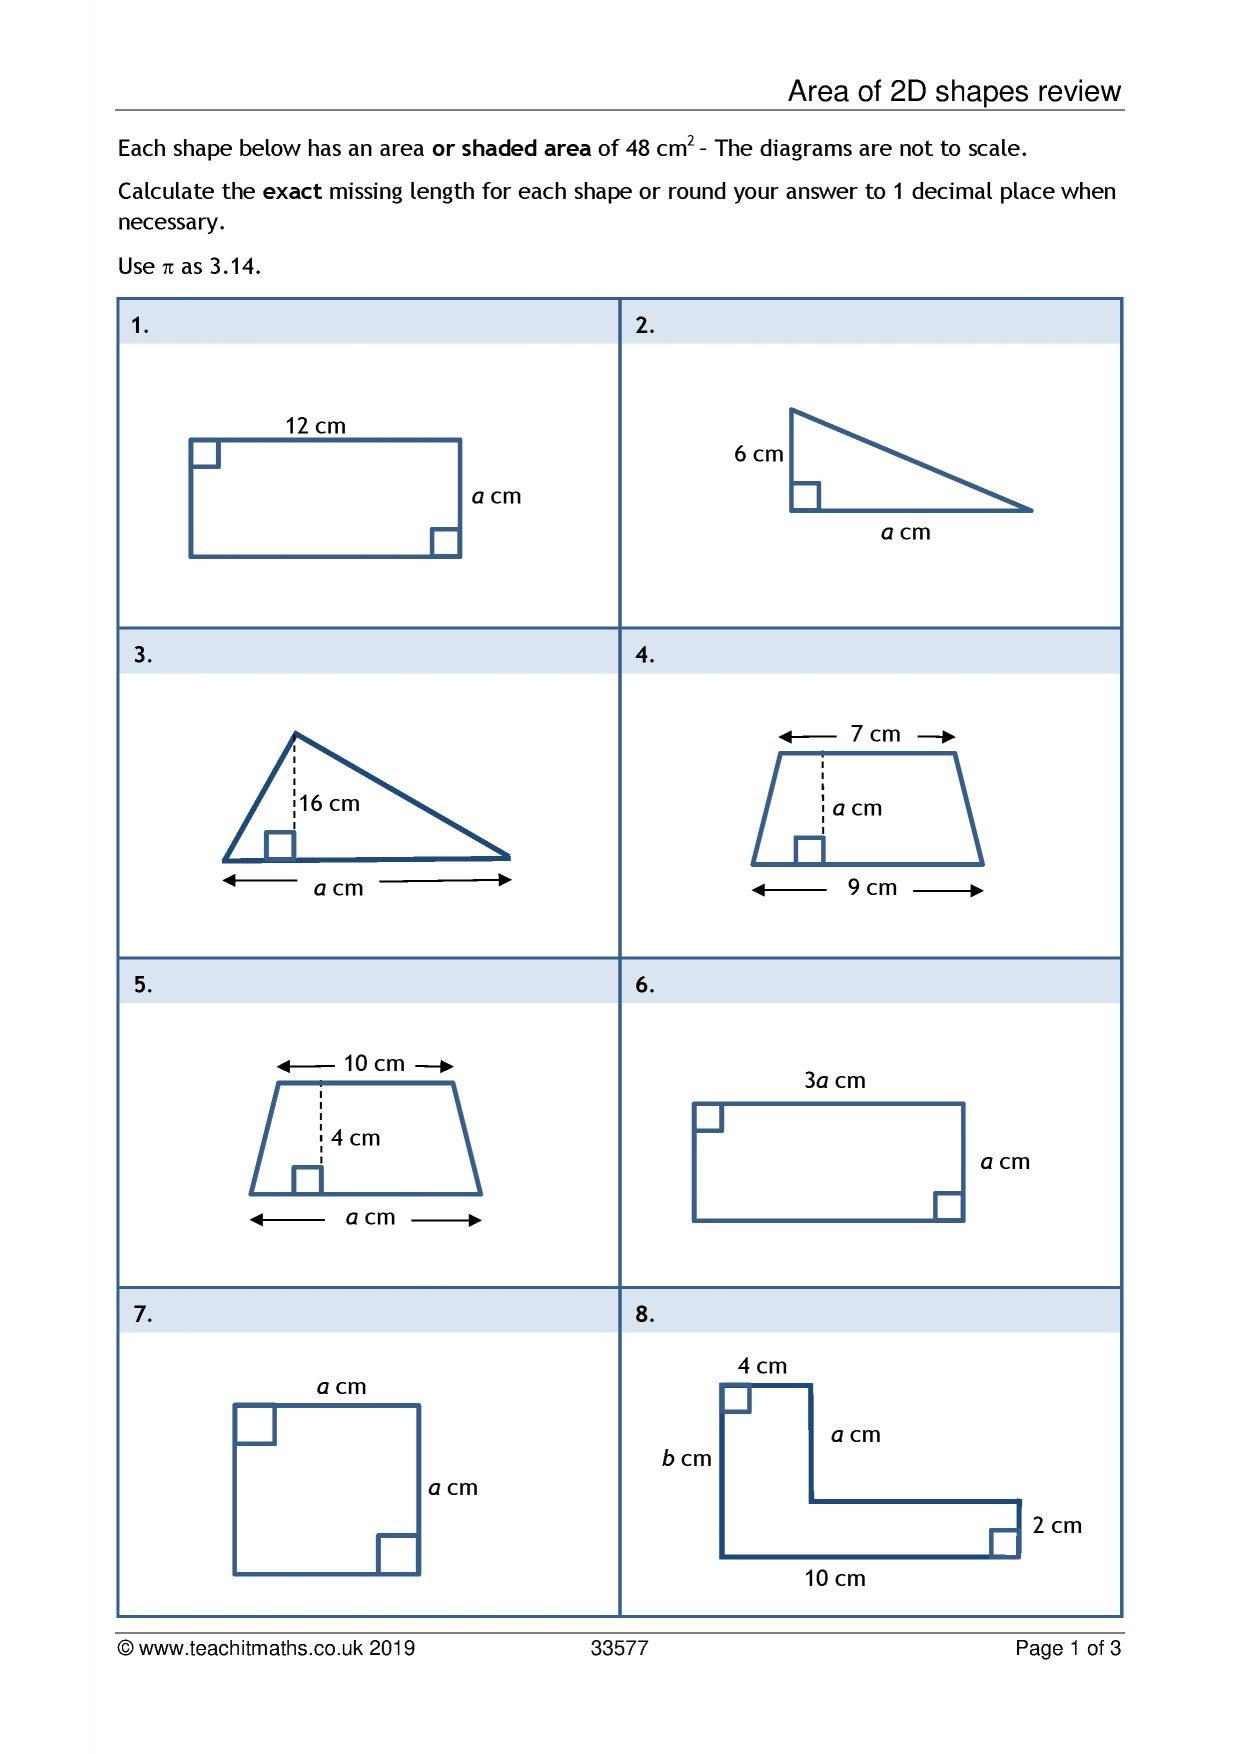 Area Irregular Shapes Worksheet Ks3 Geometry and Measure